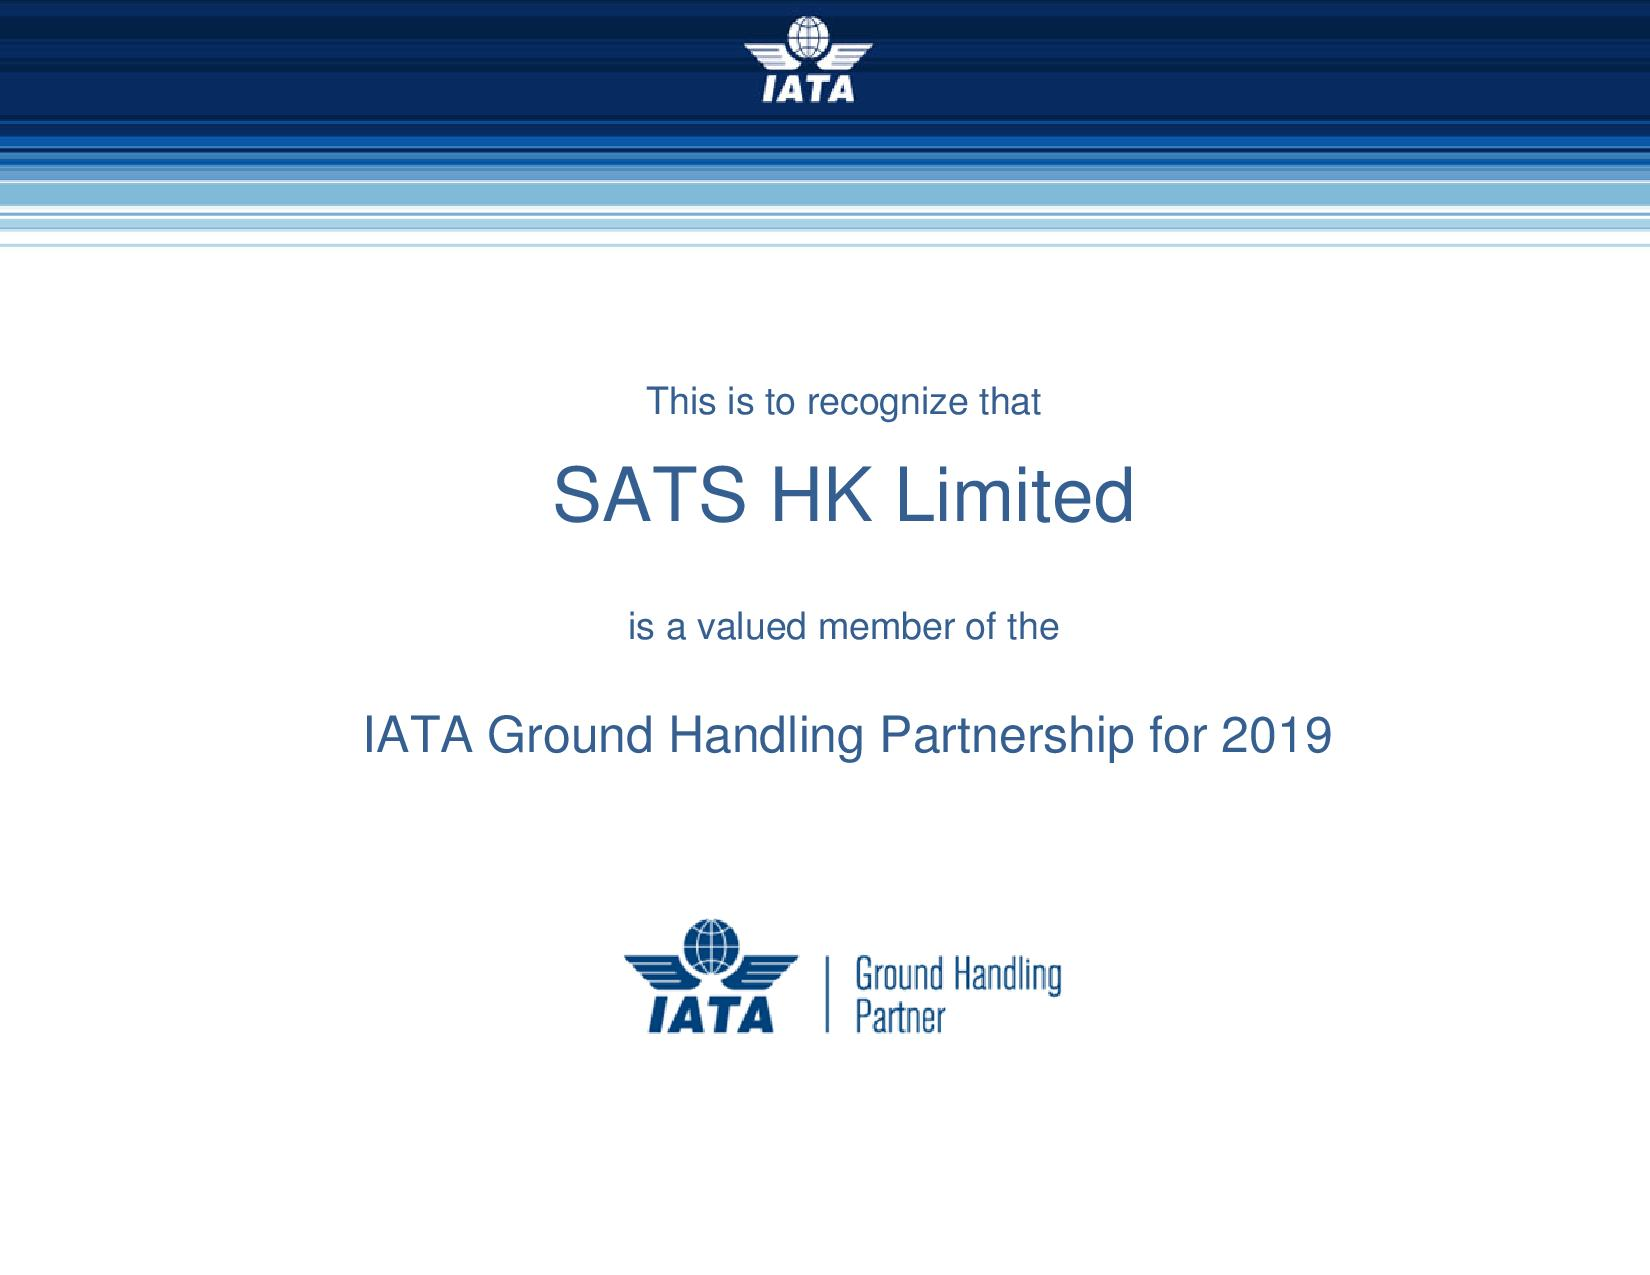 IATA Ground Handling Partnership 2019